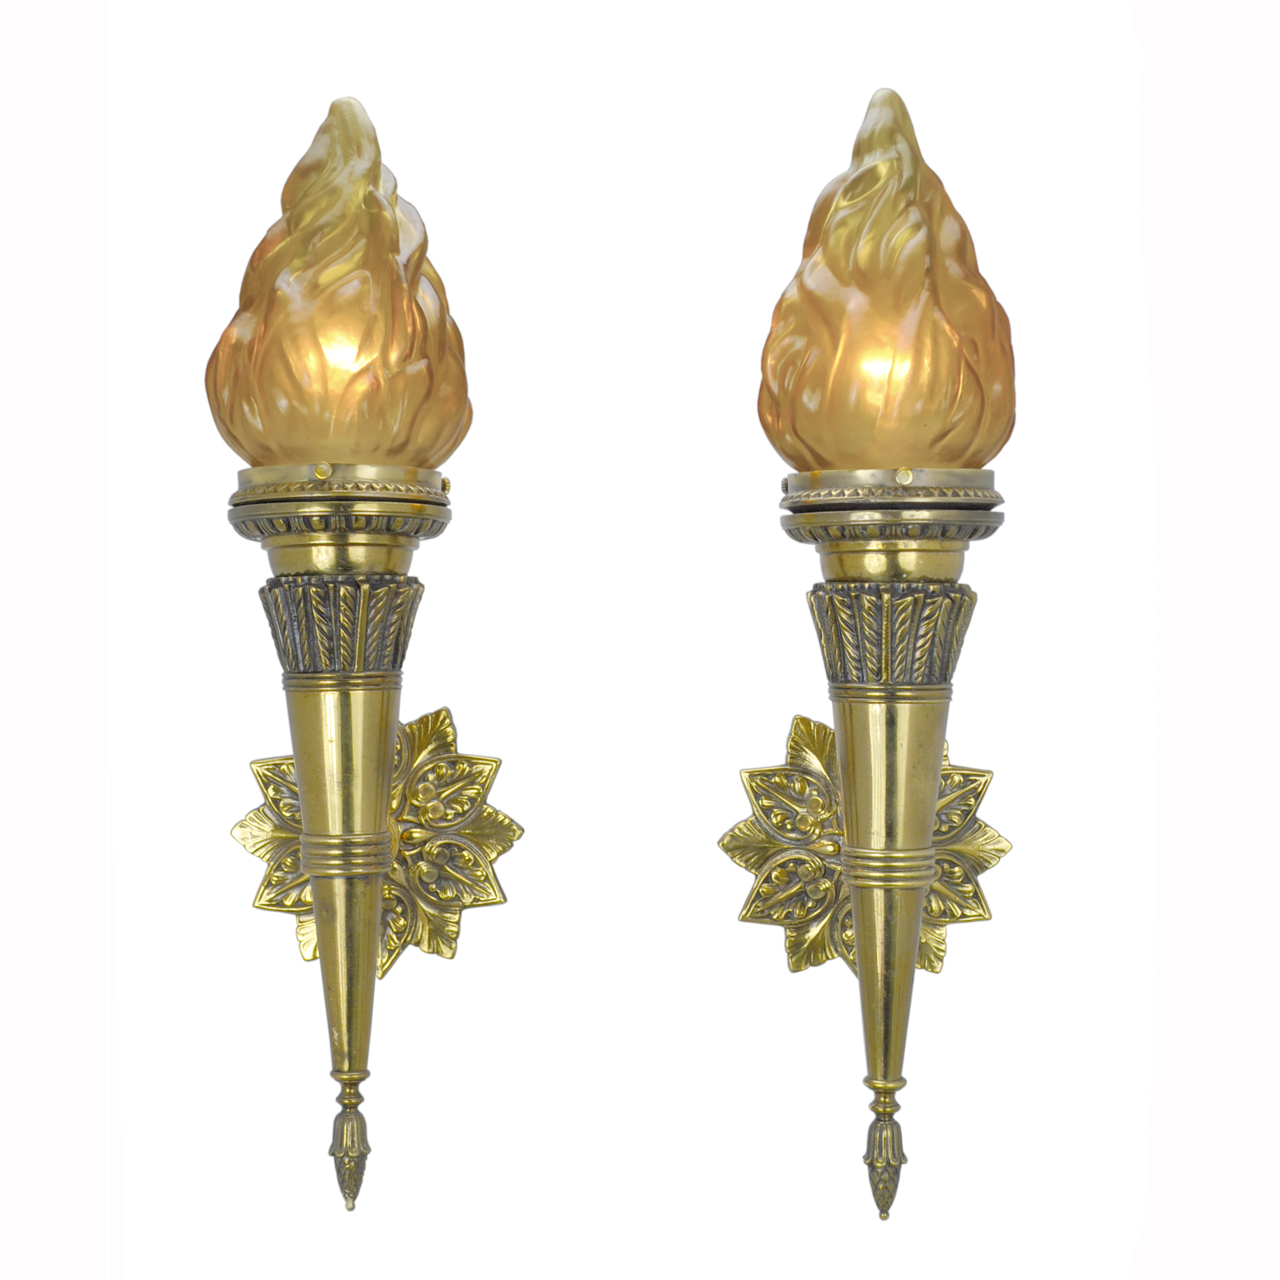 Large Torch Wall Lights : Pair of Antique Torch Sconces with Flame Shades (ANT-399) For Sale Antiques.com Classifieds